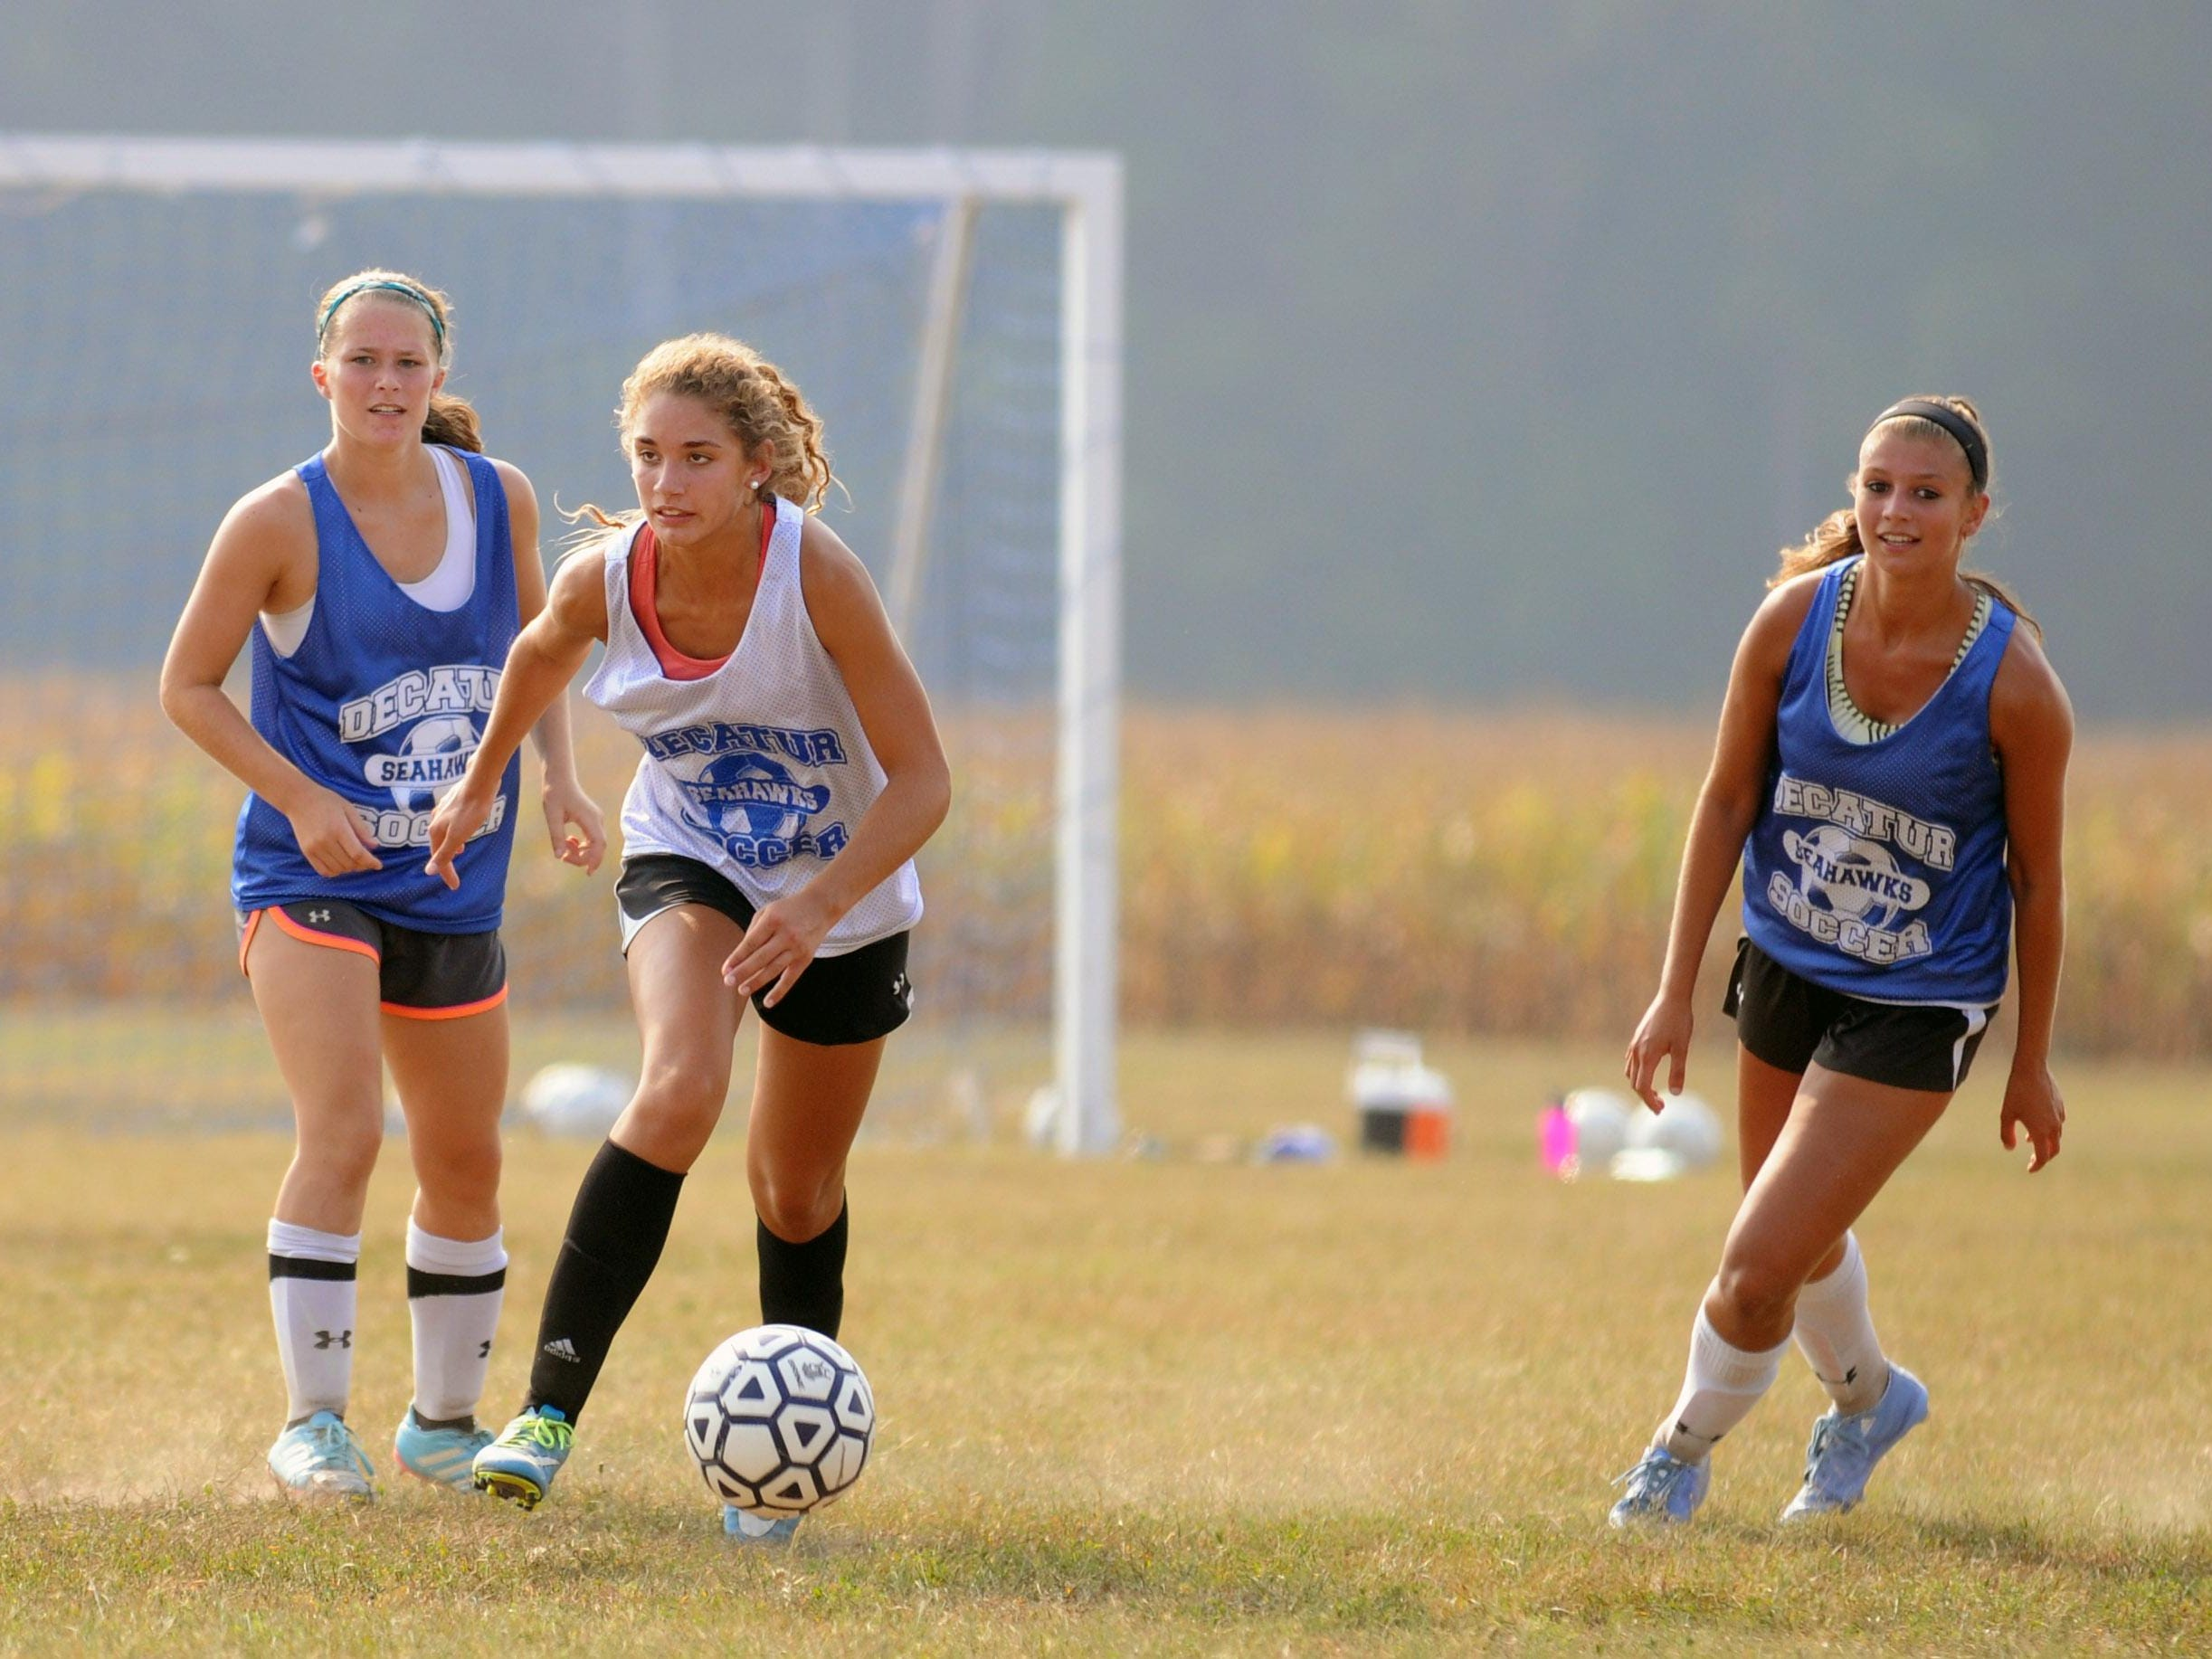 Stephen Decatur's Christina Romano, white, moves past two teammates during practice.